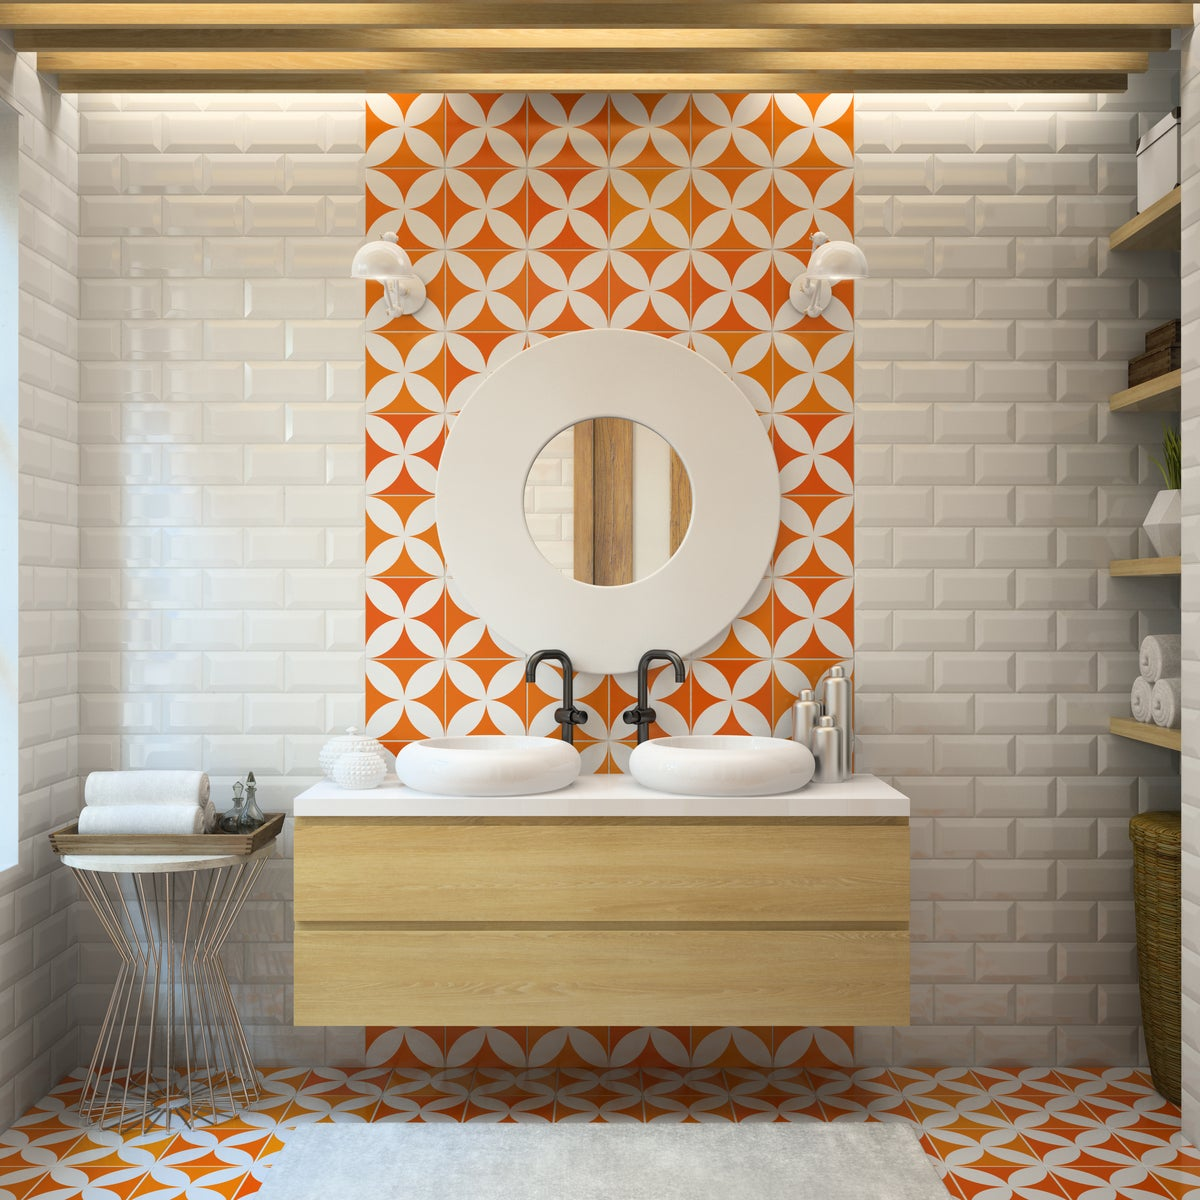 Modern bathroom in white and orange tile